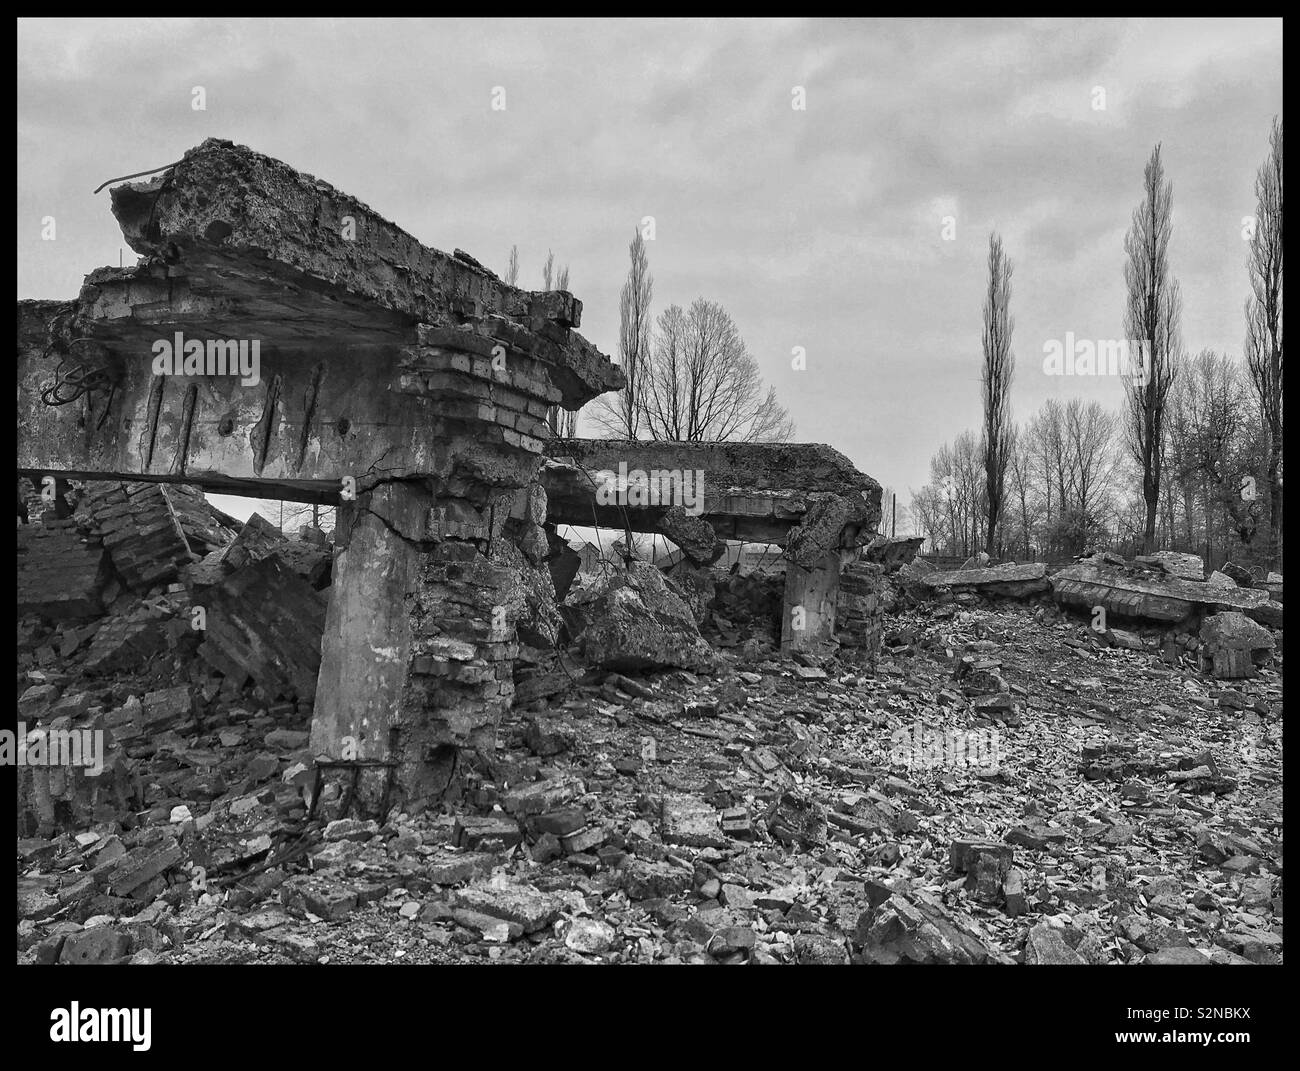 The remains of a gas chamber at the Nazi Auschwitz II-Birkenau Concentration Camp. Shortly before the camp was liberated by Russian Forces in 1945, the Nazis tried to destroy Auschwitz. Now a Memorial Stock Photo